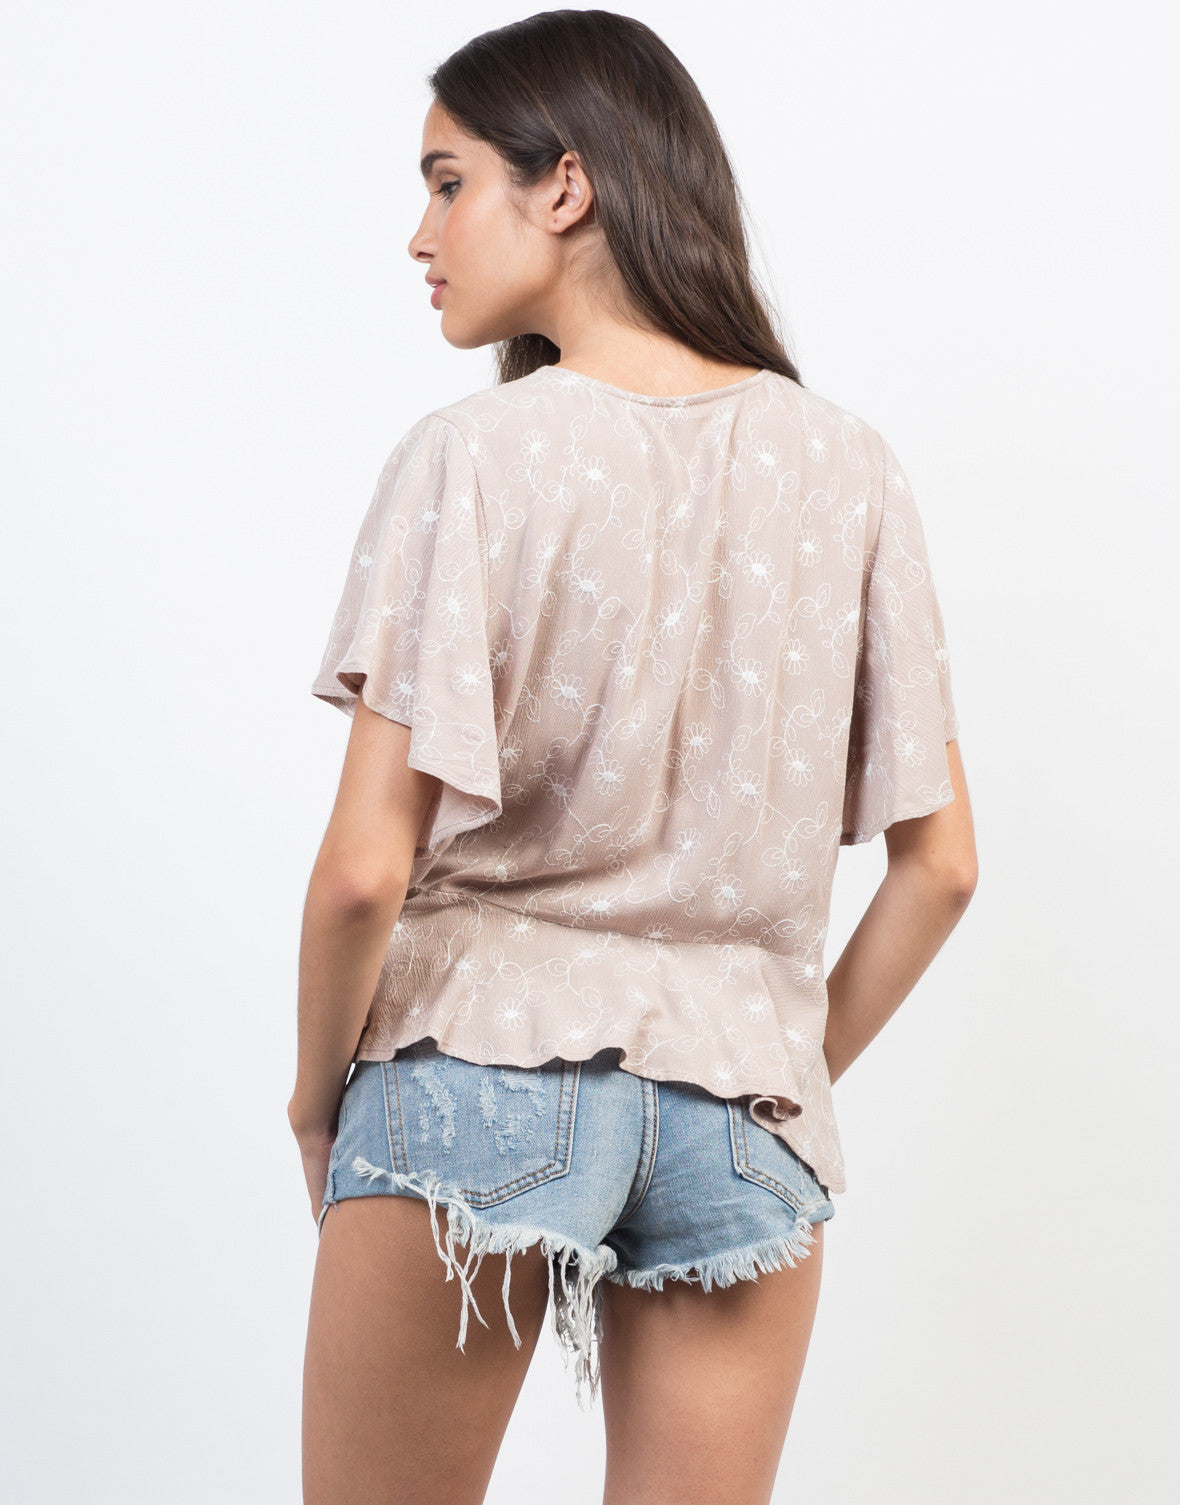 Back View of Flutter Floral Top